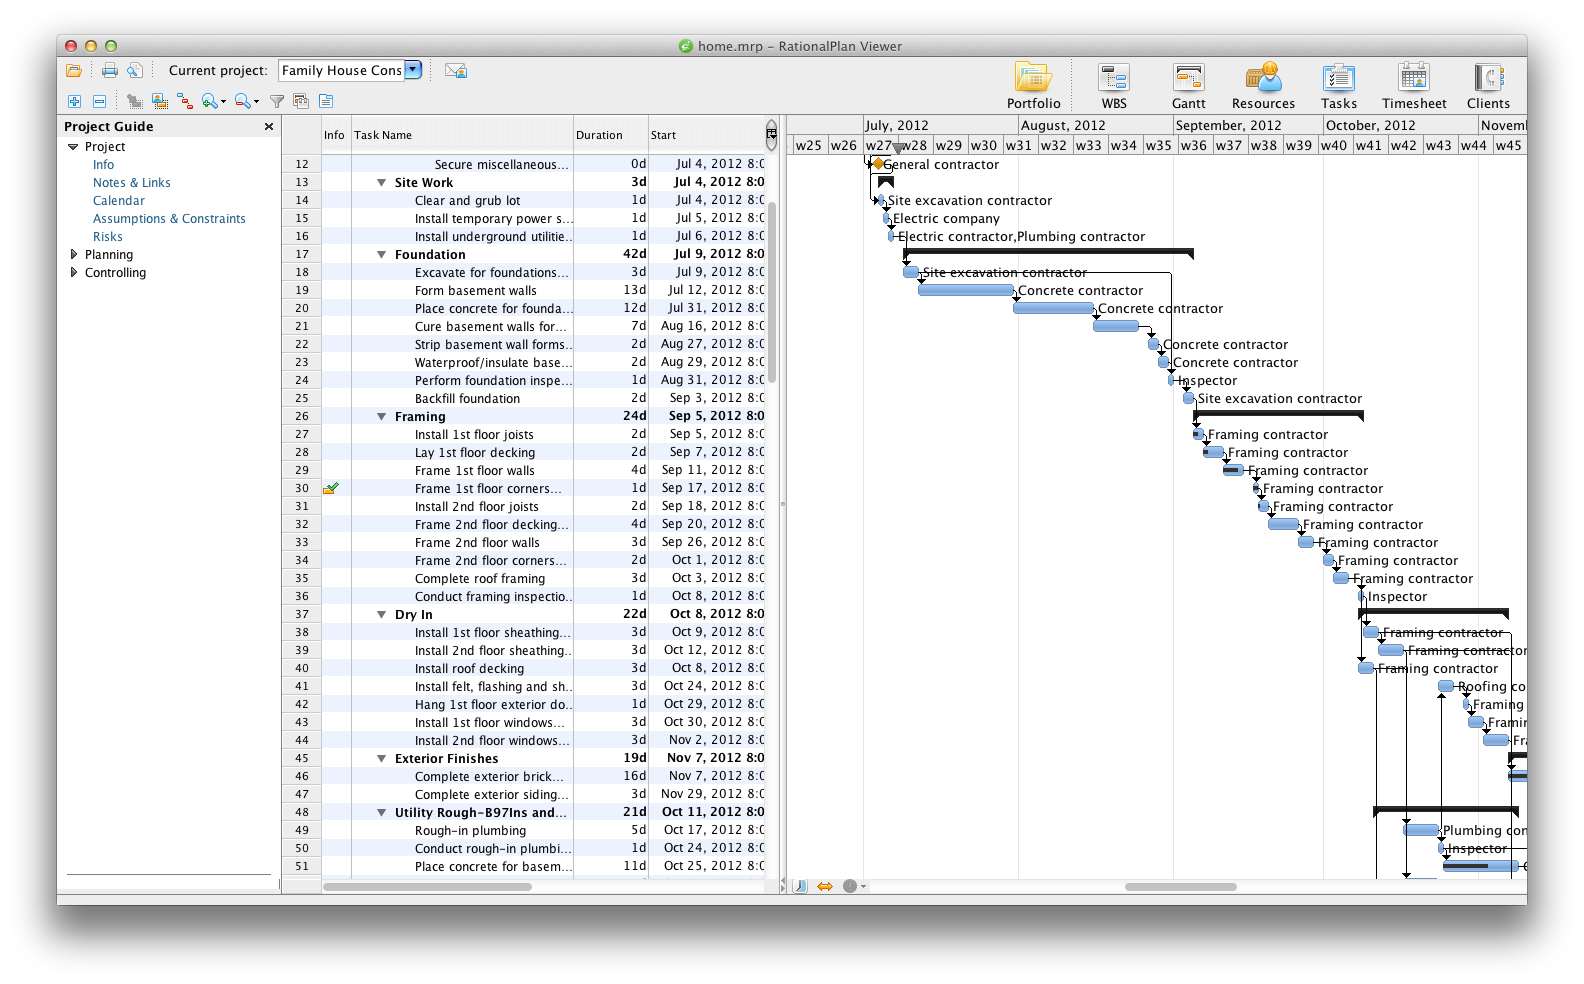 RationalPlan Project Viewer for Mac Screenshot